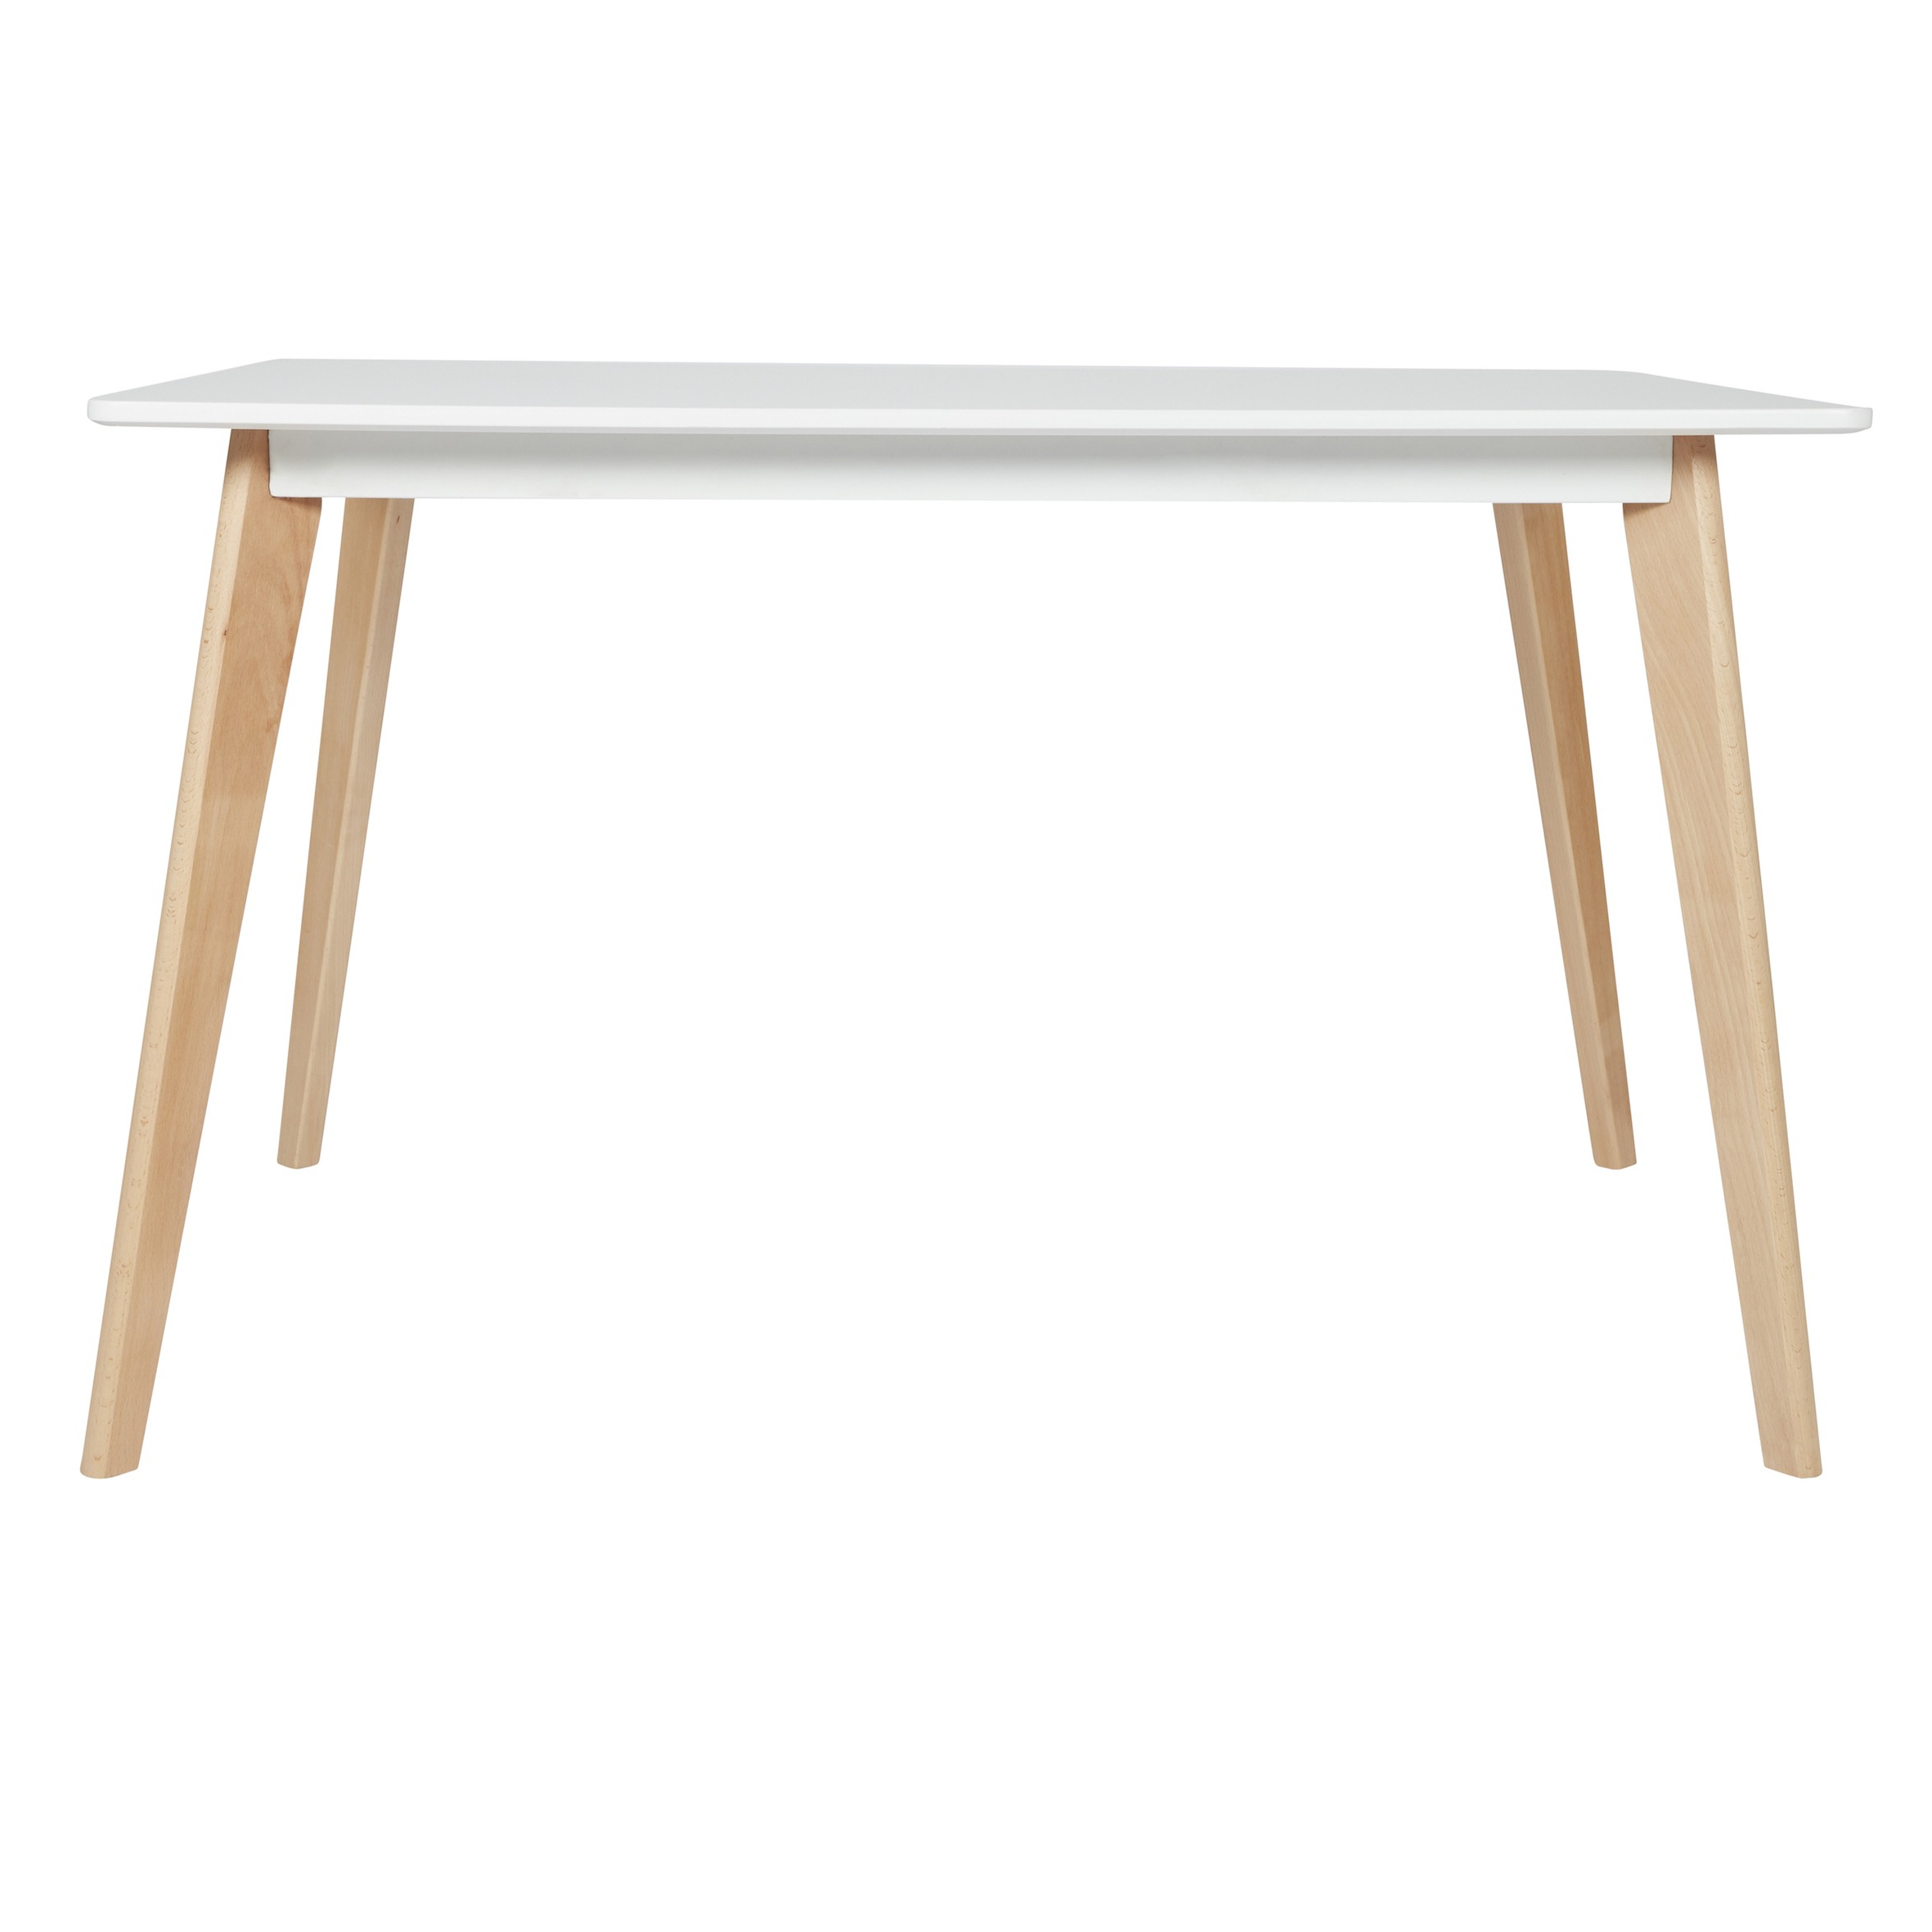 Eames Style Dining Tables With Wooden Legs Within Popular Dining Table With Natural Beech Wood Legs (White (View 5 of 16)